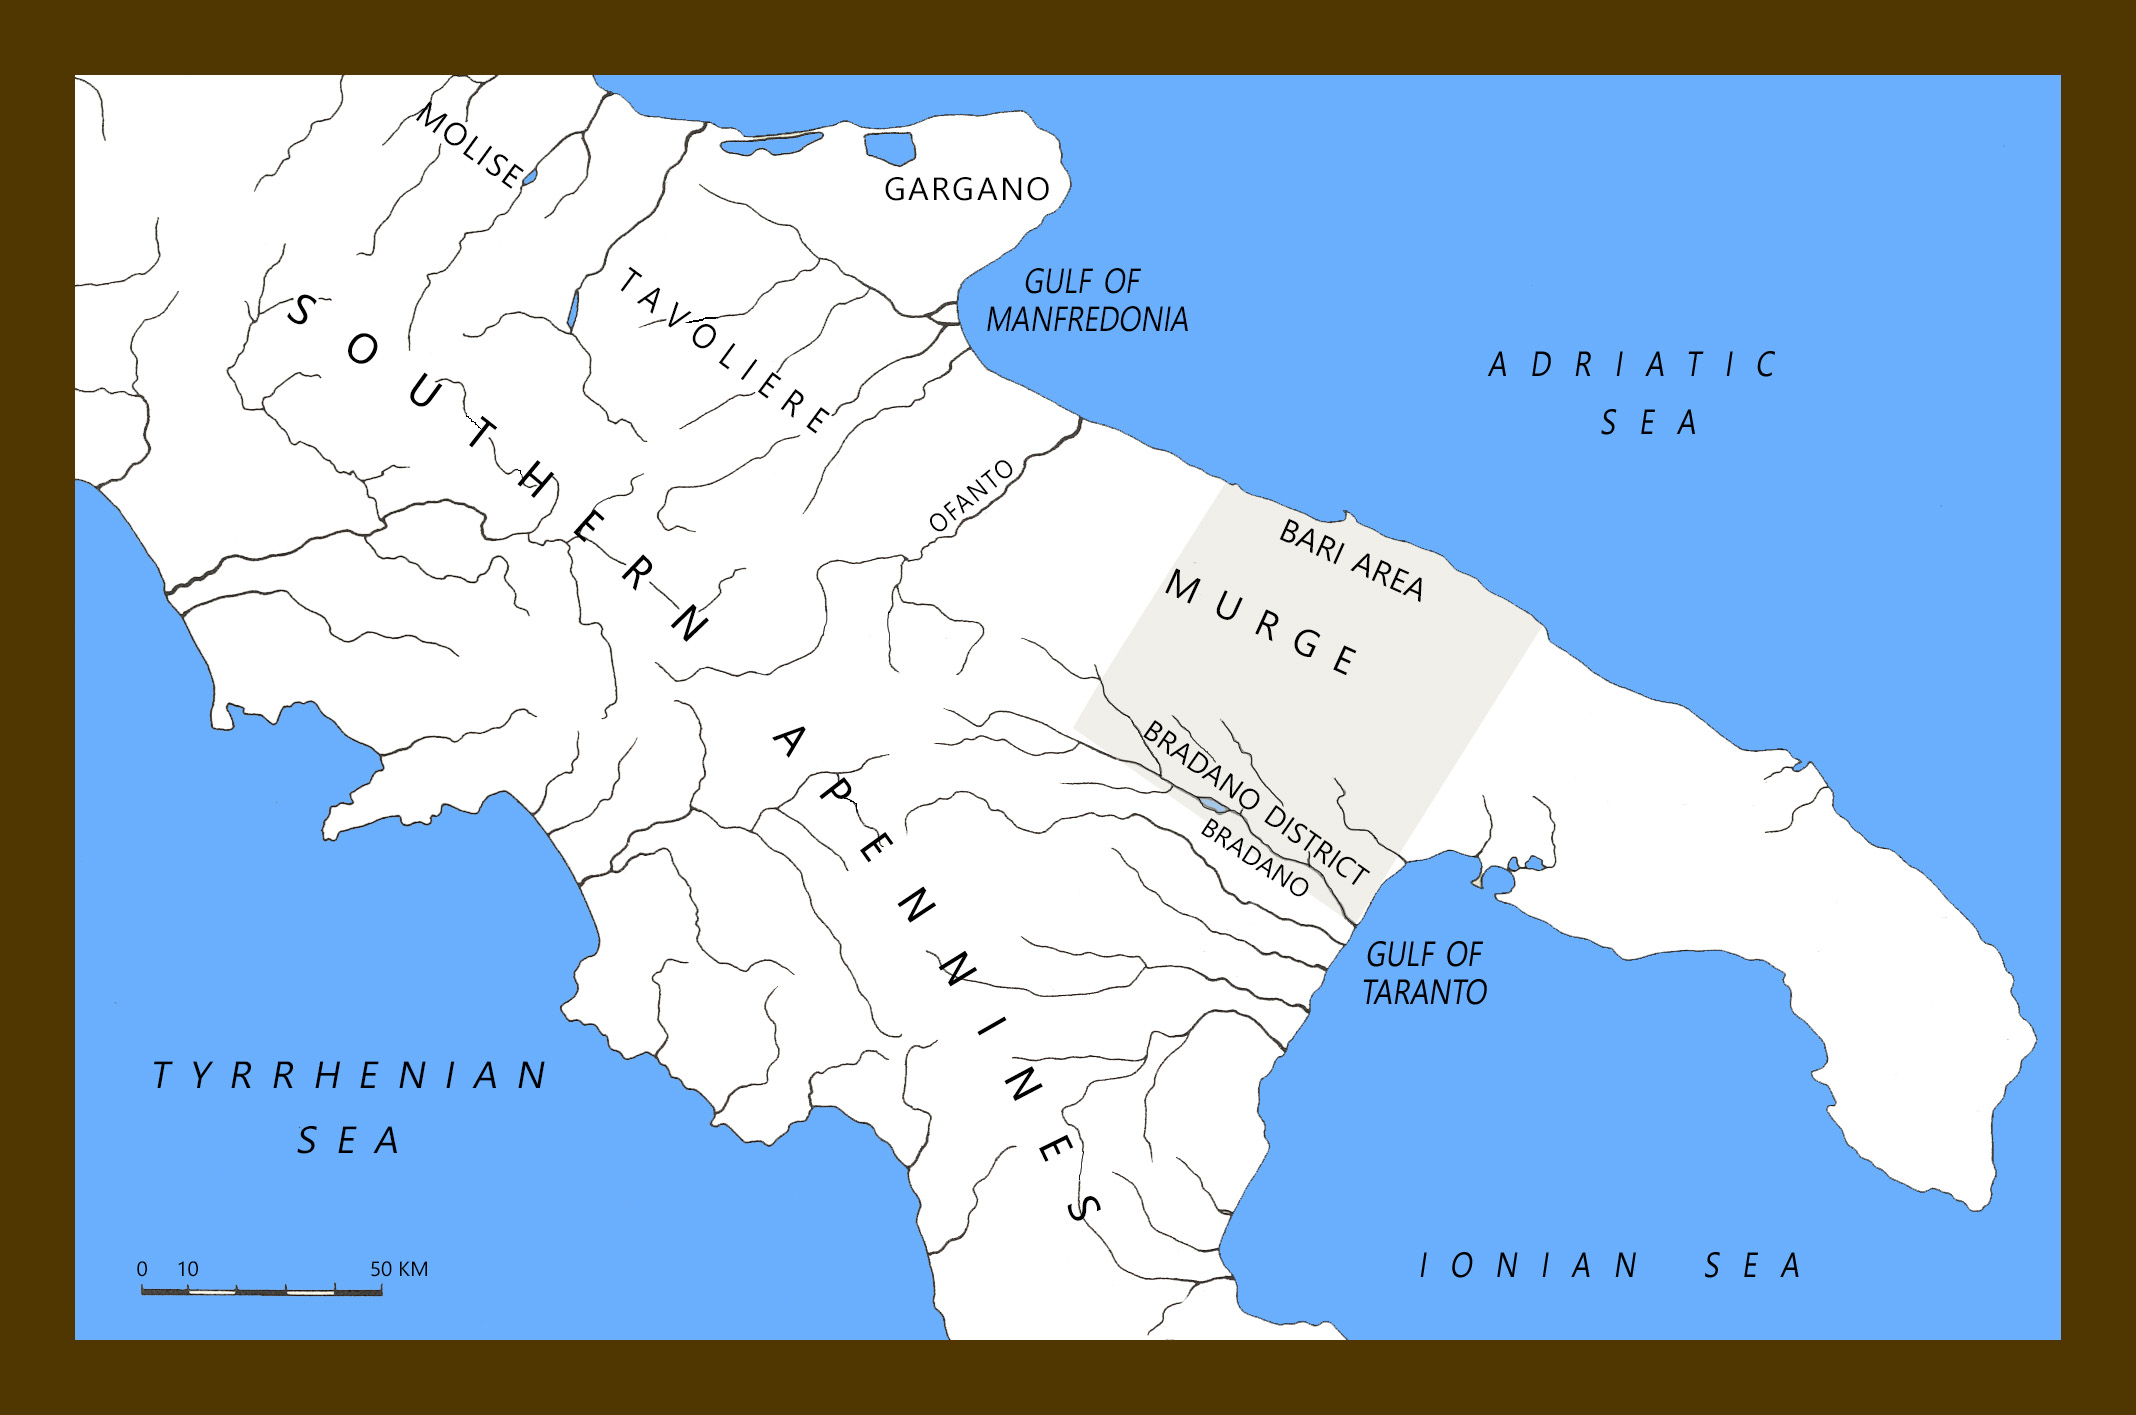 Map Of South Italy.Map Of South Italy Showing Geography And Ancient Peucetia Museum